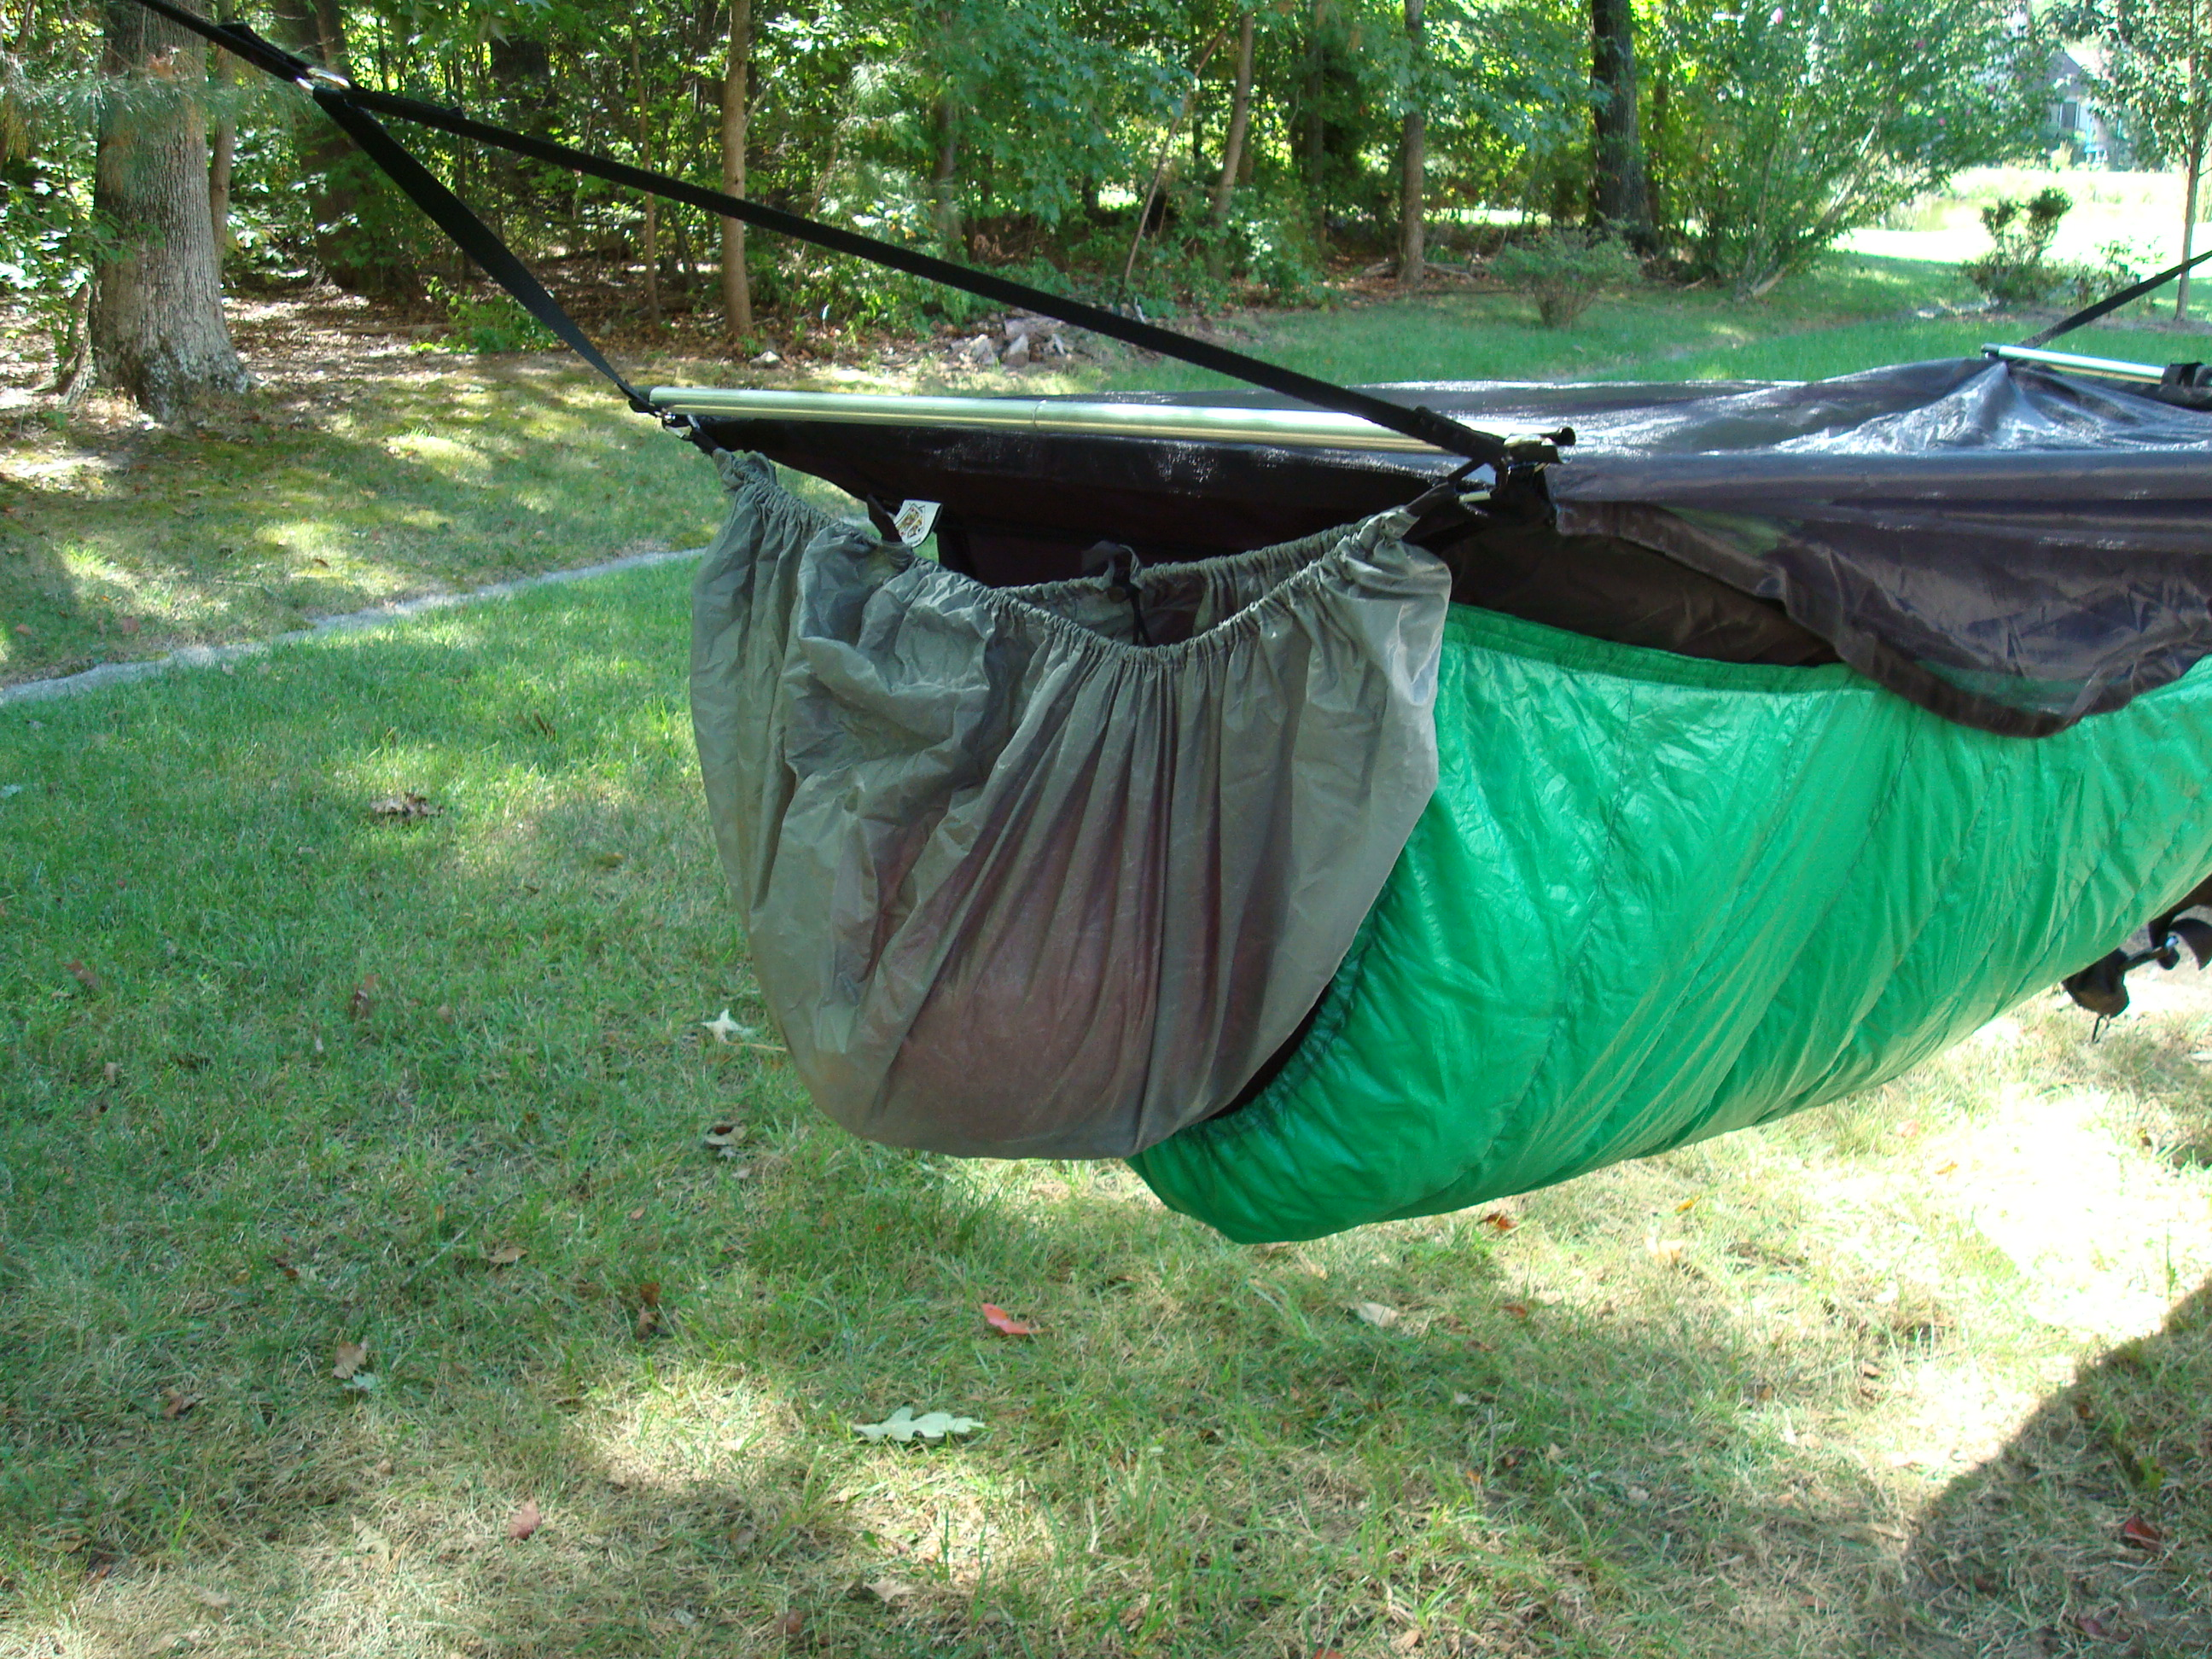 Medium image of jeff u0027s gear hammock pack cover on jrb bmbh